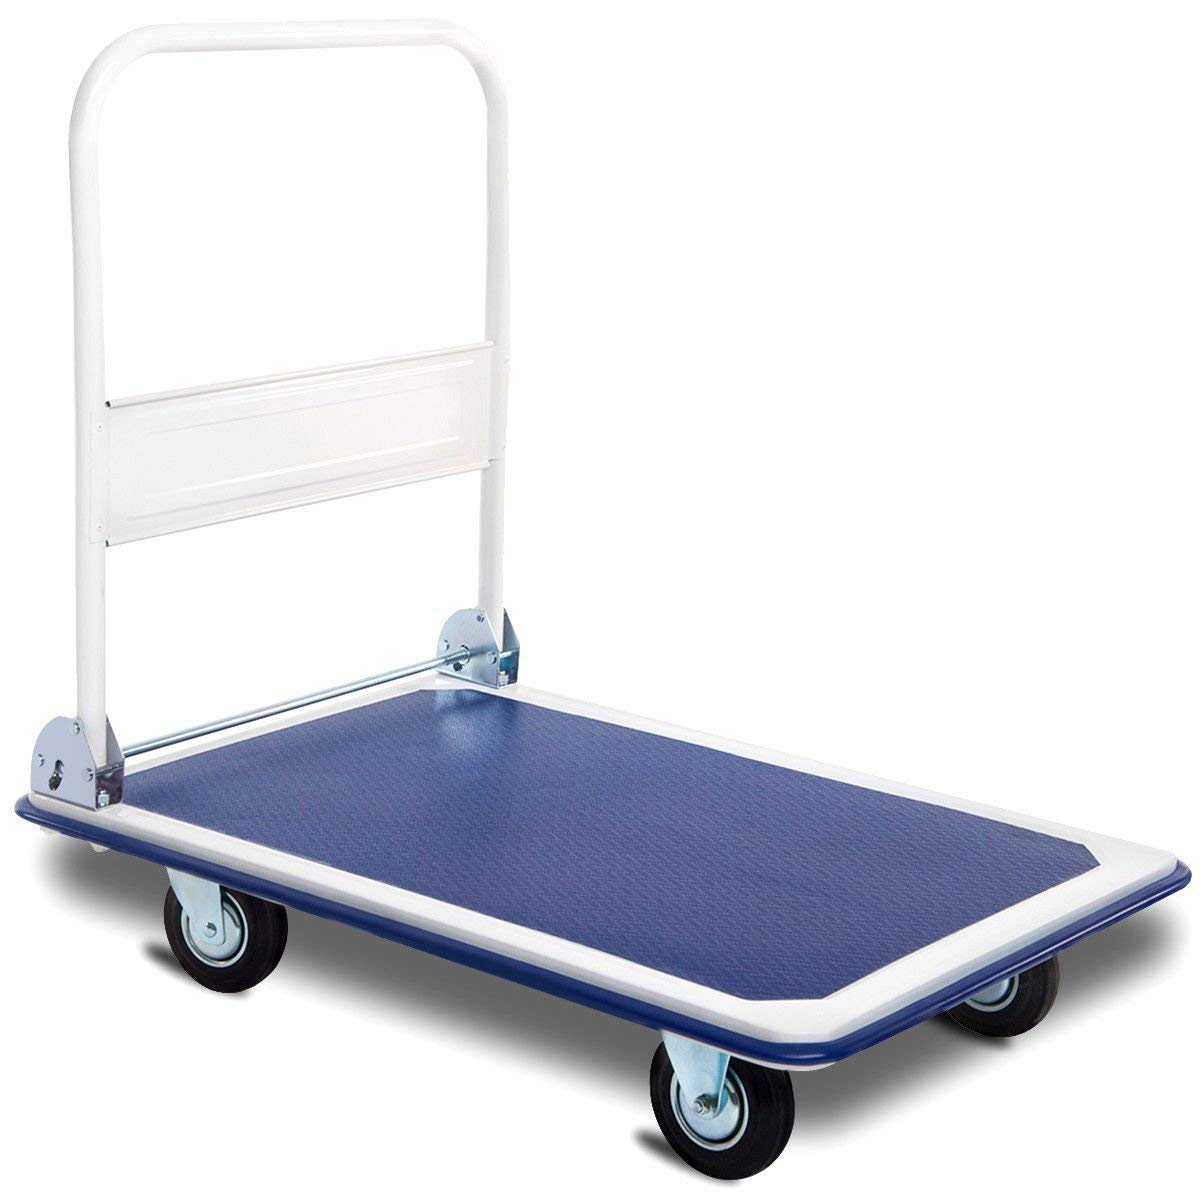 Amazon.com : ASdf Warehouse Load Folding Platform Trolley Large Capacity Carrying Manual Platform Trolley (Color : Blue) : Garden & Outdoor